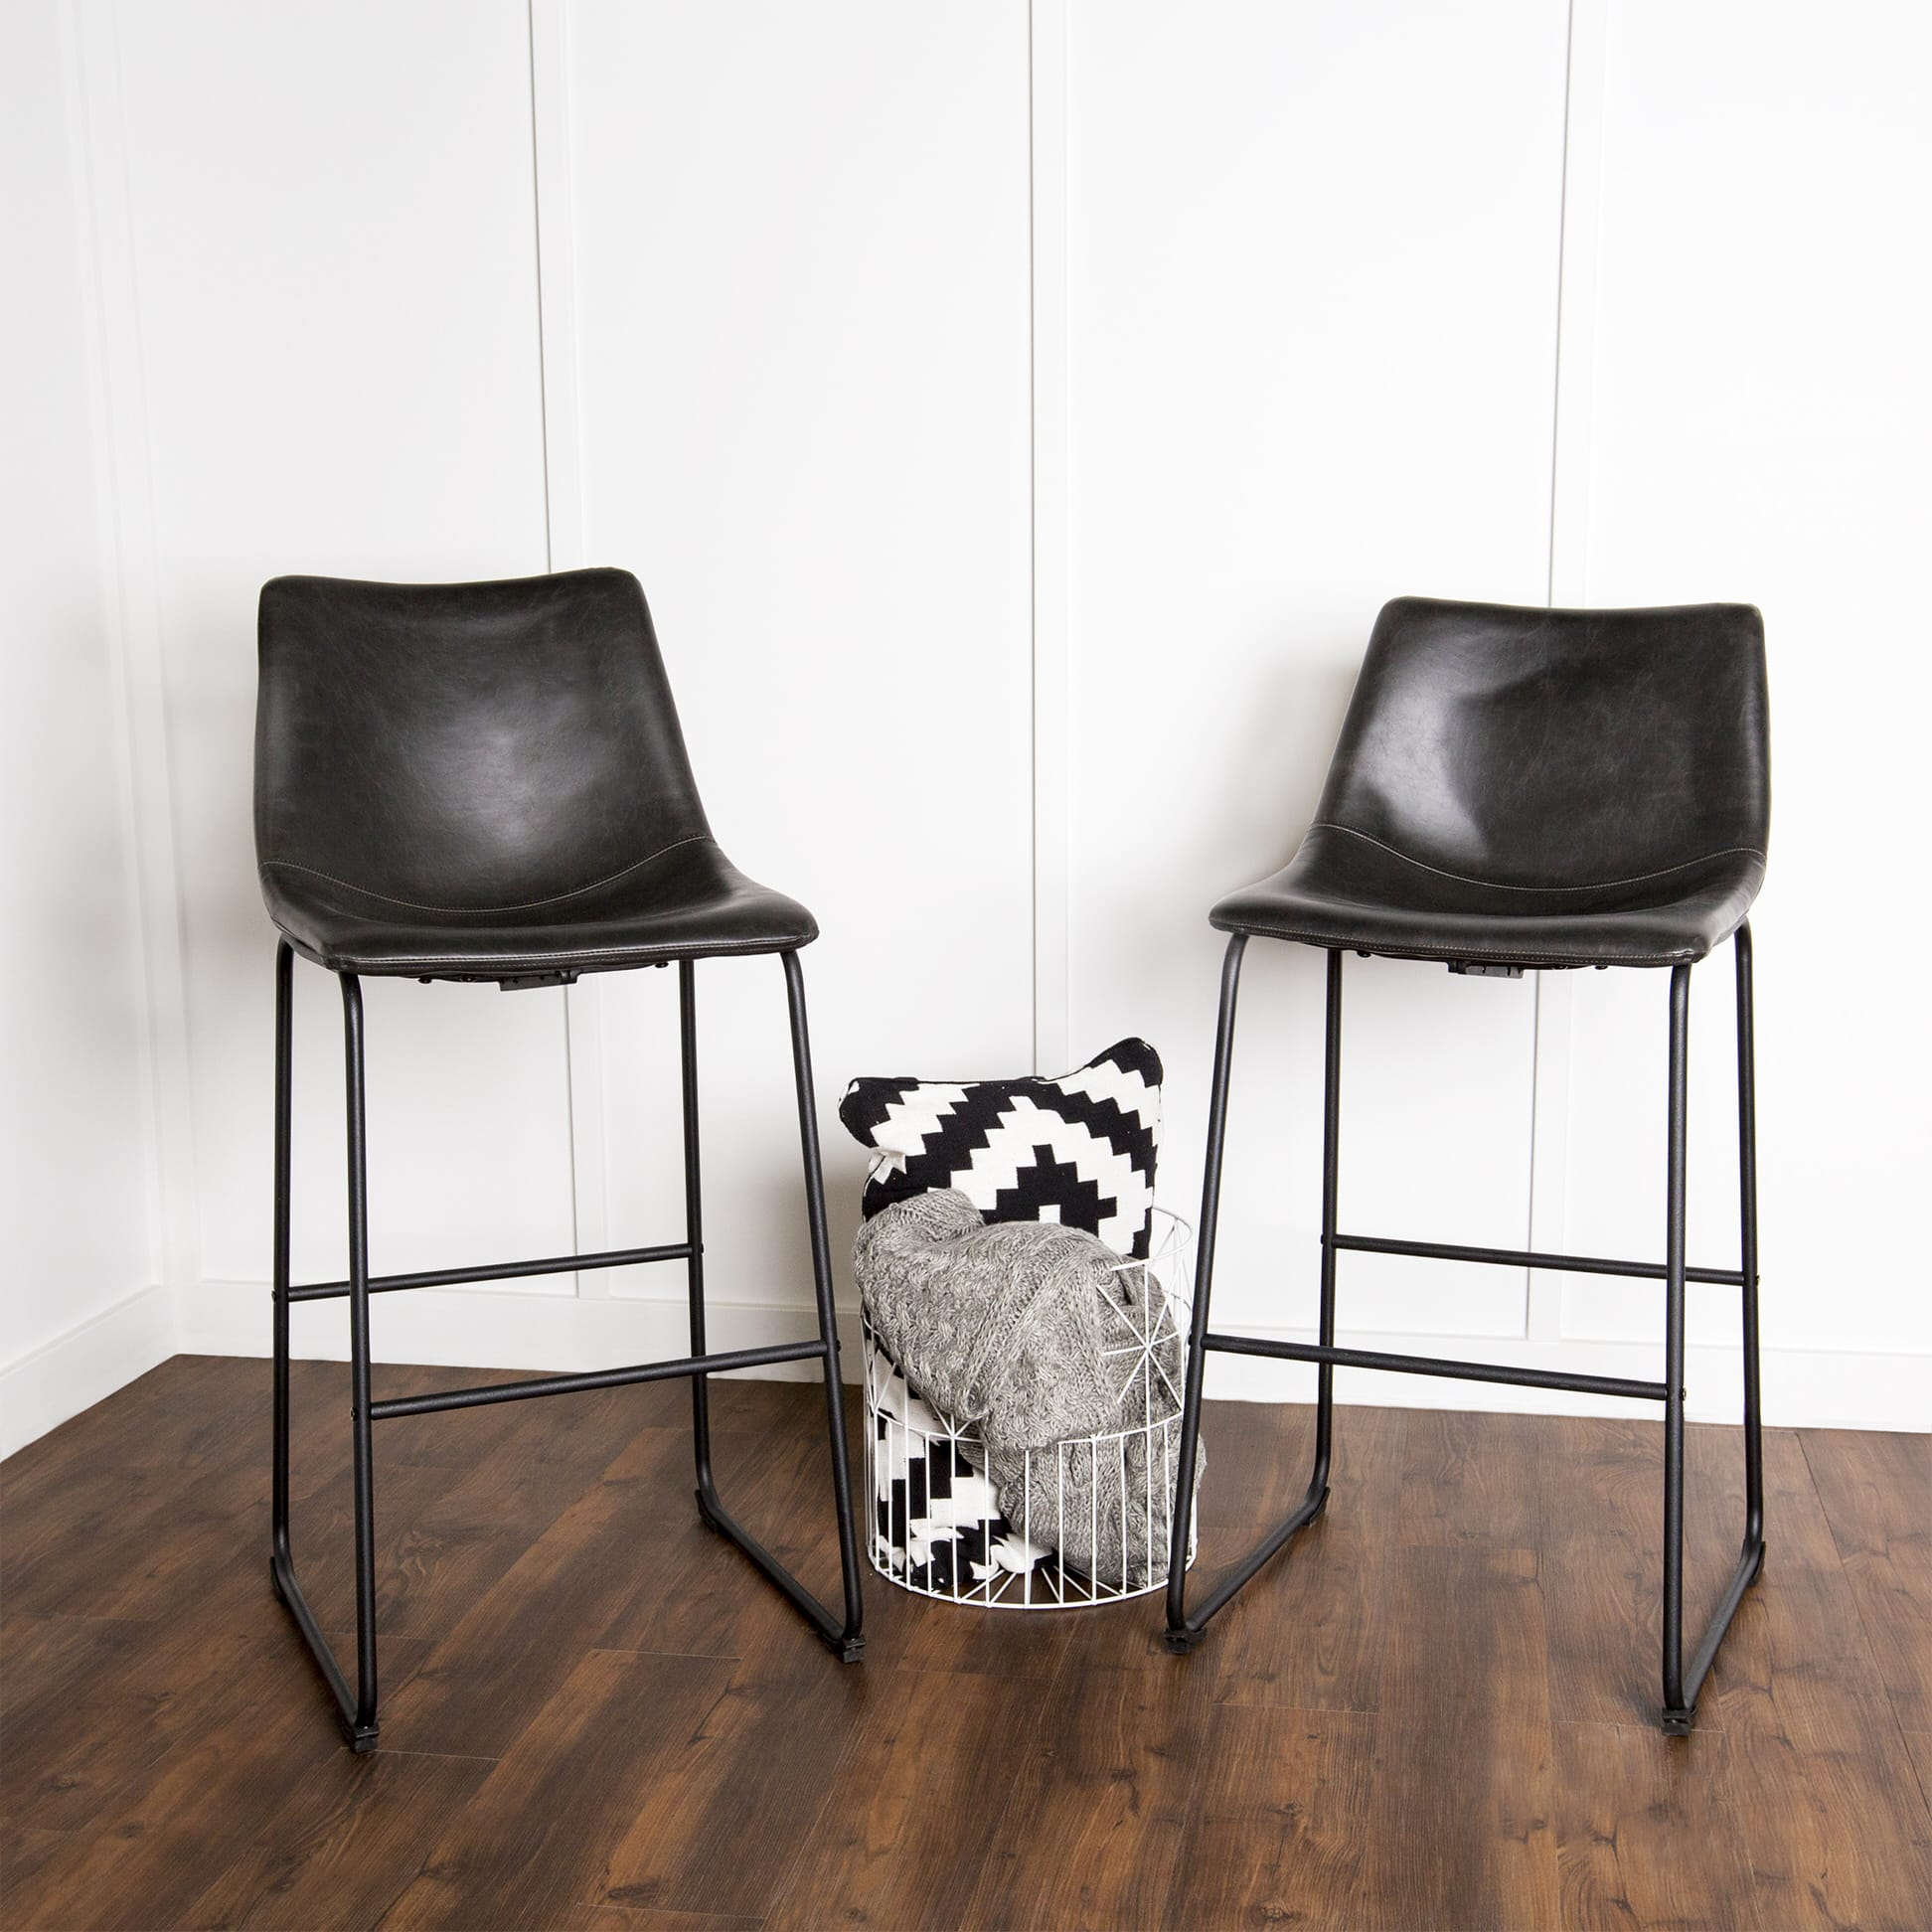 Fine Wasatch Faux Leather Bar Stools Set Of 2 Black By Walker Edison Pabps2019 Chair Design Images Pabps2019Com